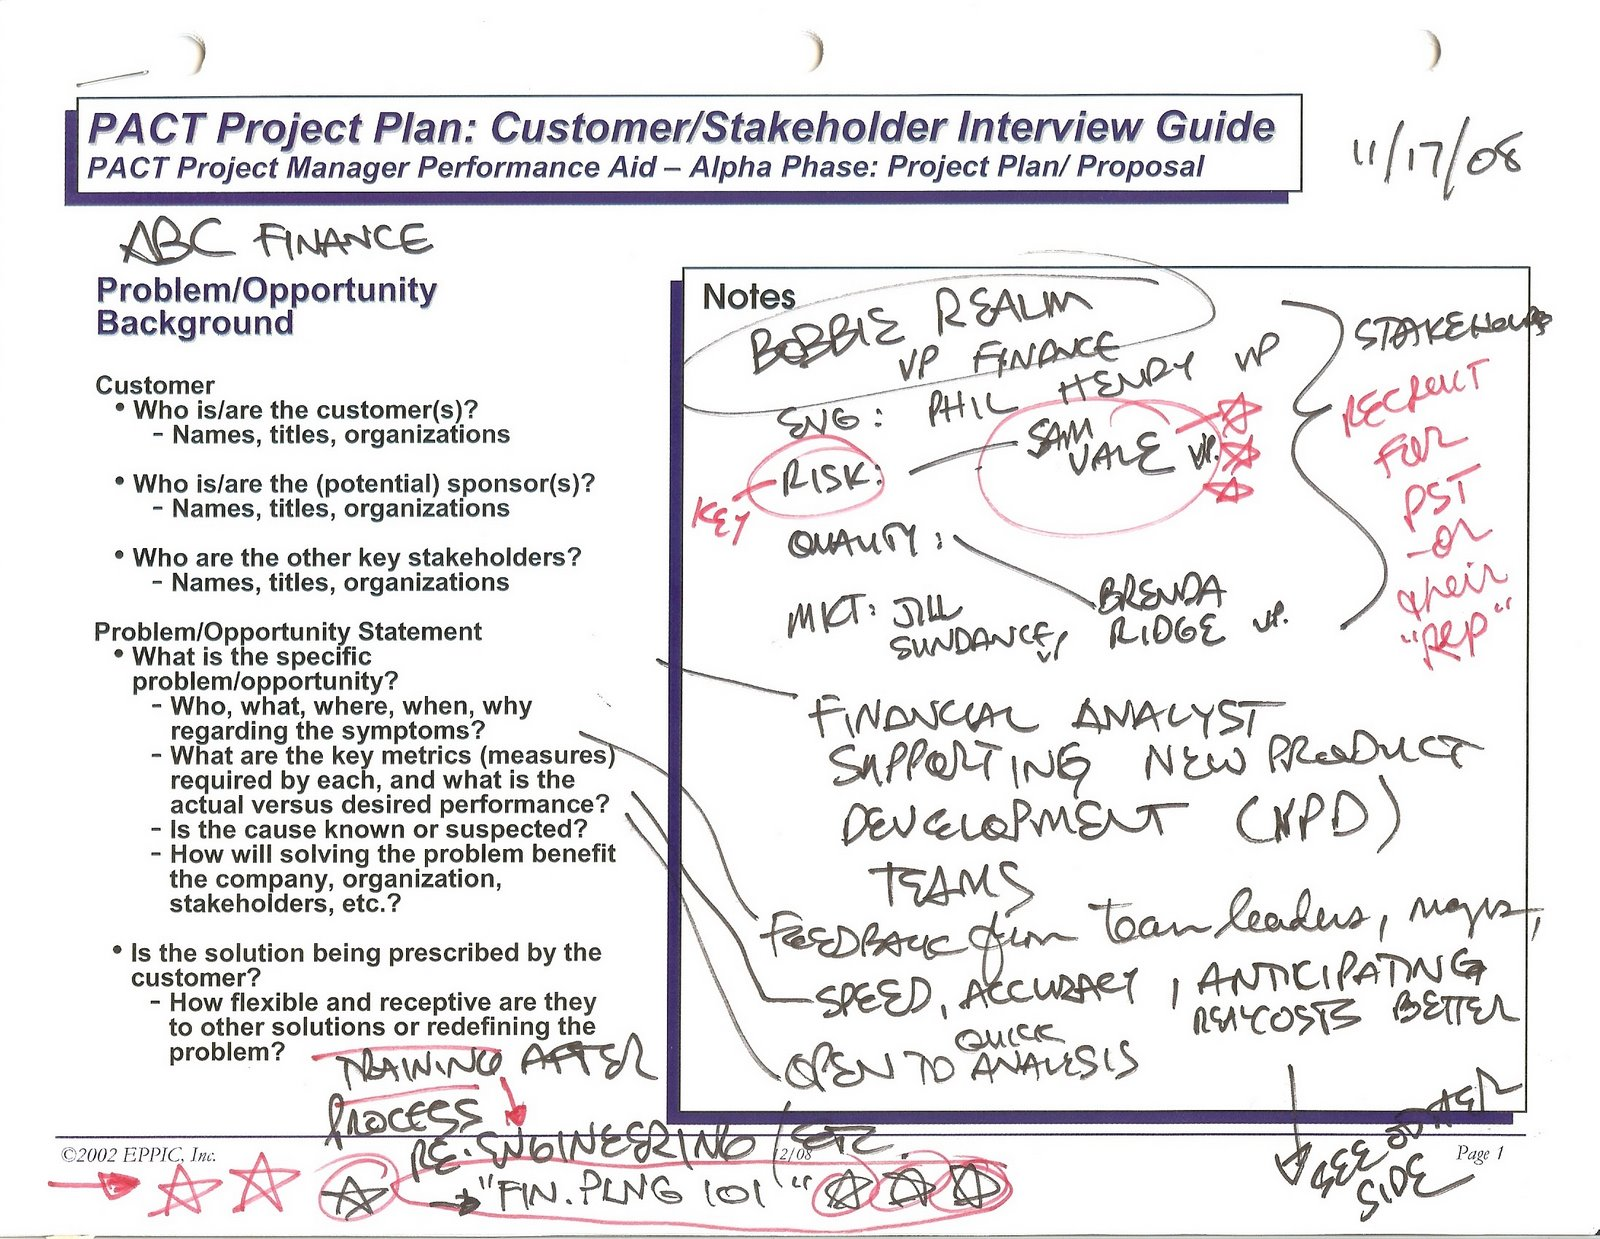 Project plan template mind mapping project plan templates project plan template mind mapping accmission Gallery